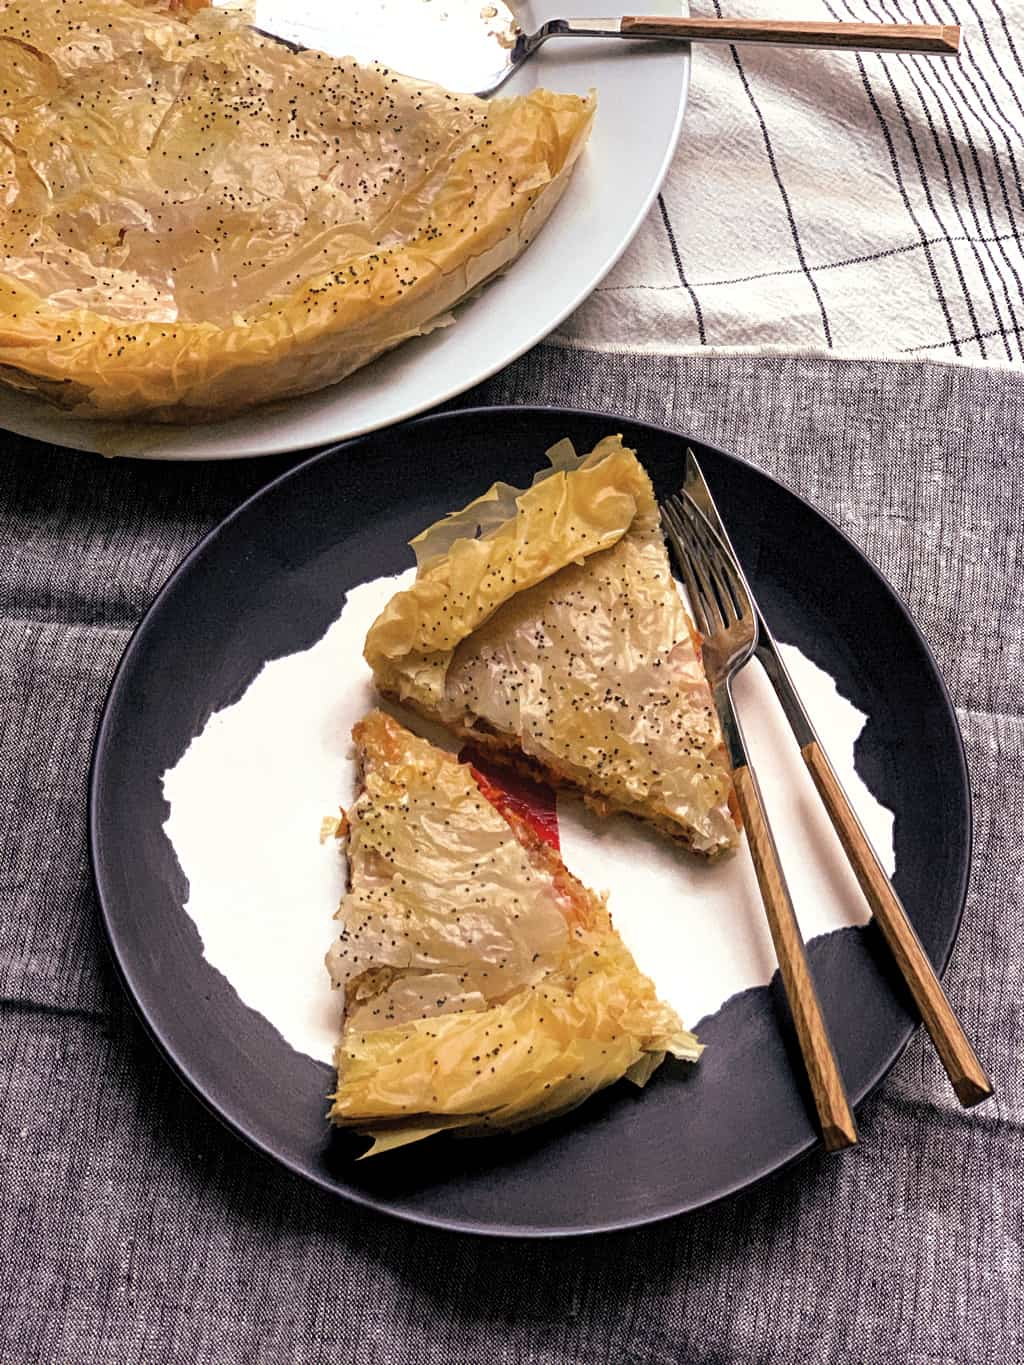 GREEK PIE WITH PASTOURMA AND KASSERI CHEESE